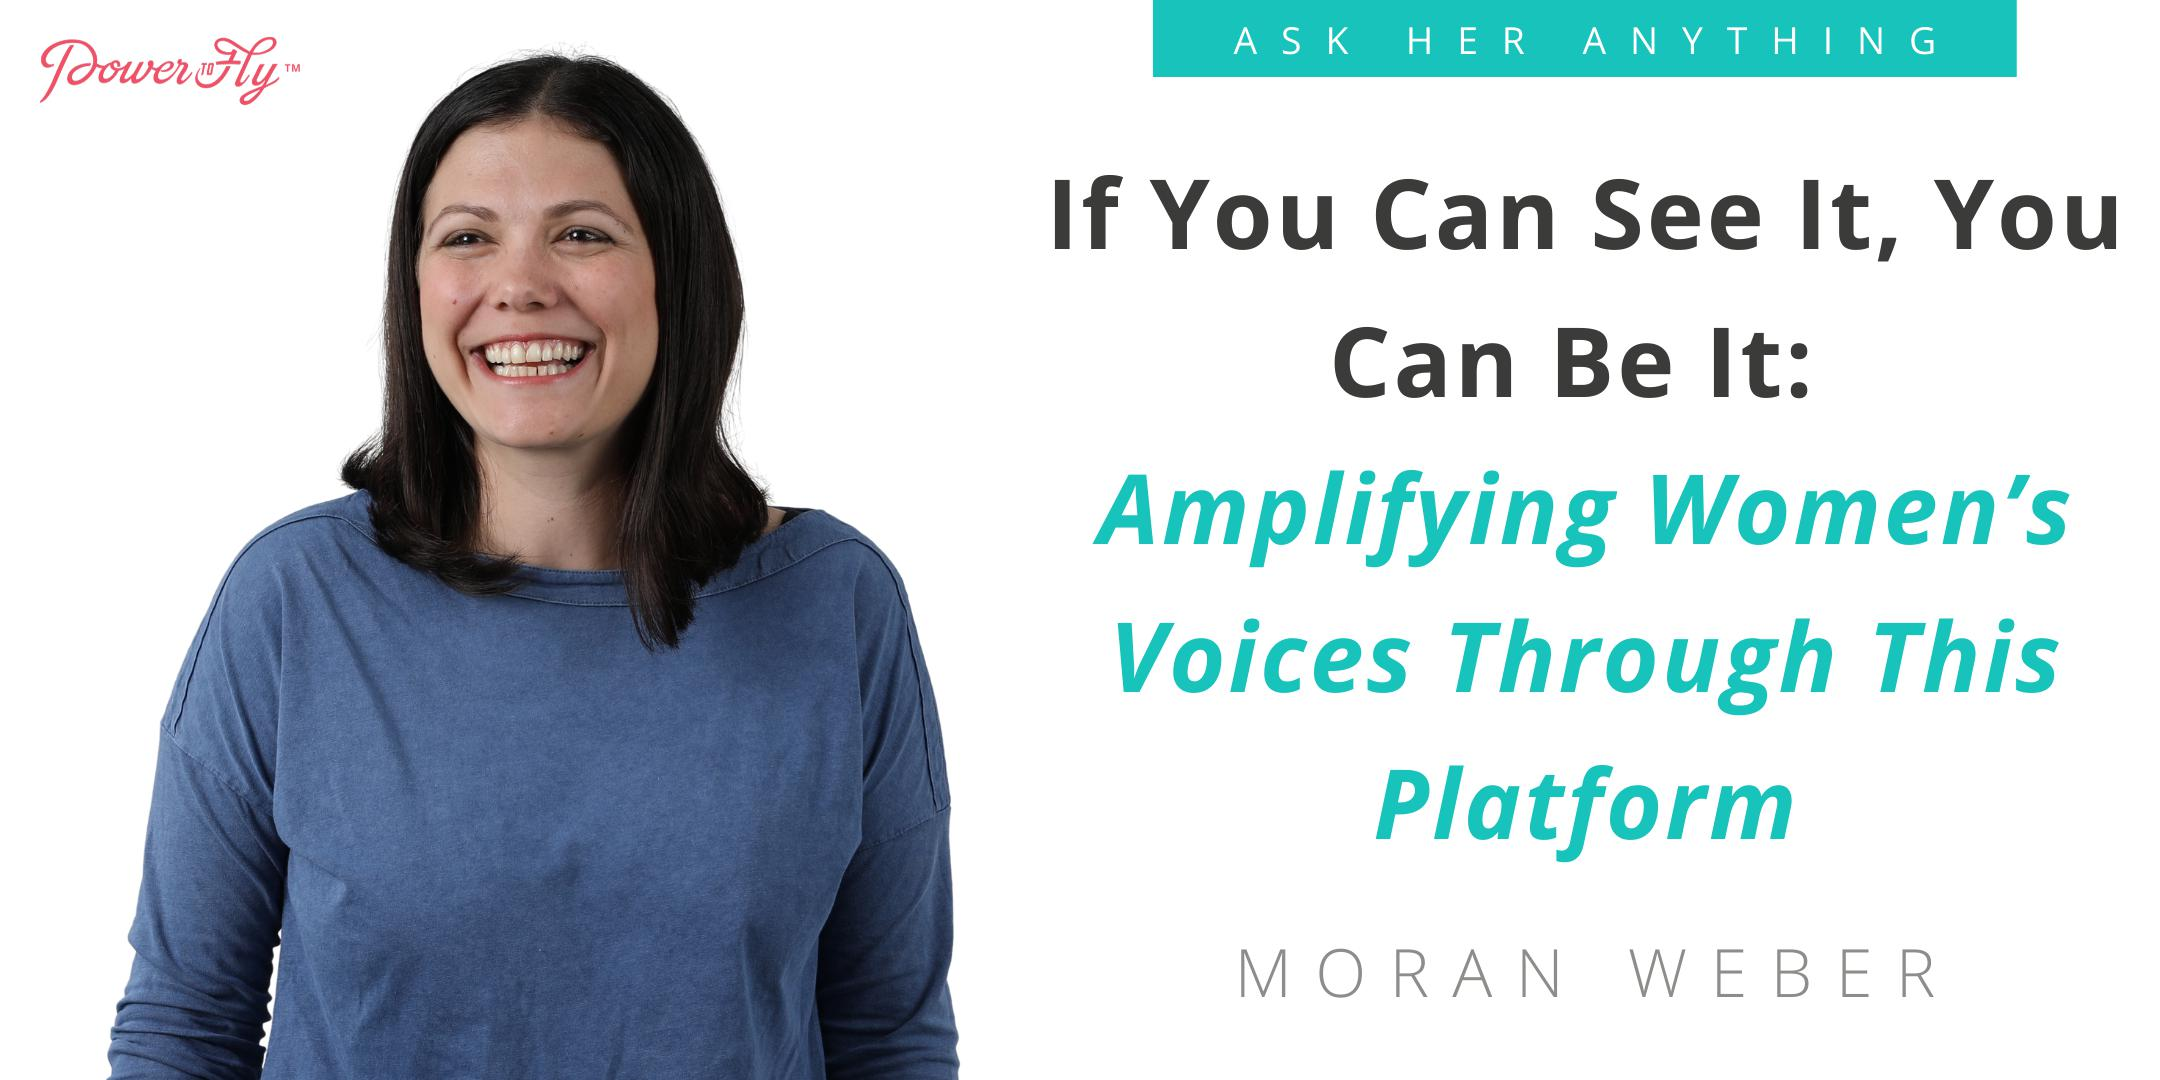 If You Can See It, You Can Be It: Amplifying Women's Voices Through This Platform